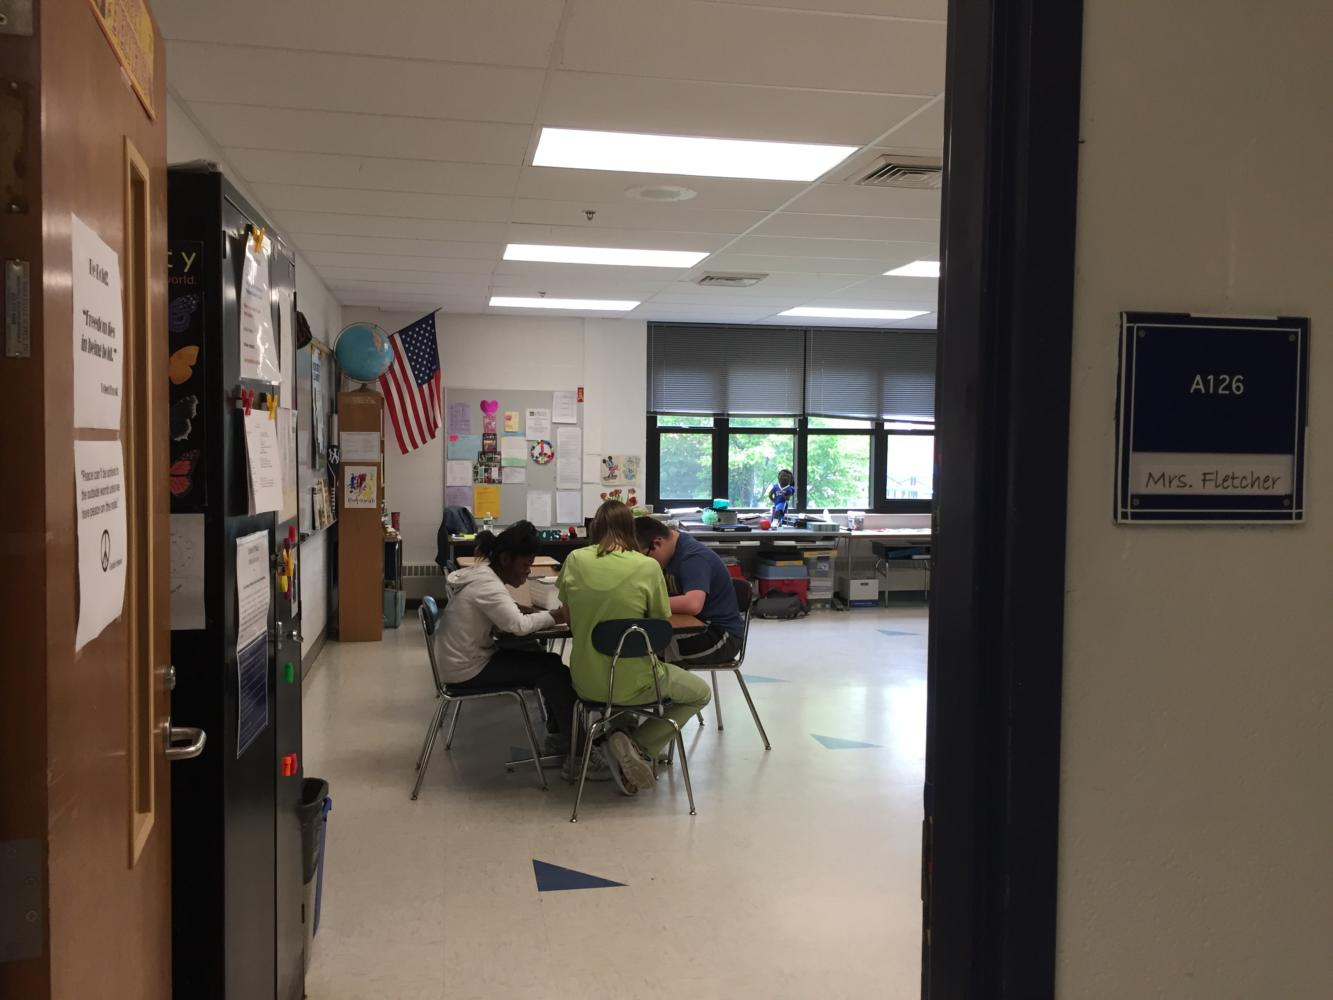 Senior Mariel Hayes, center, talks with students in the STARS room on a recent June day.